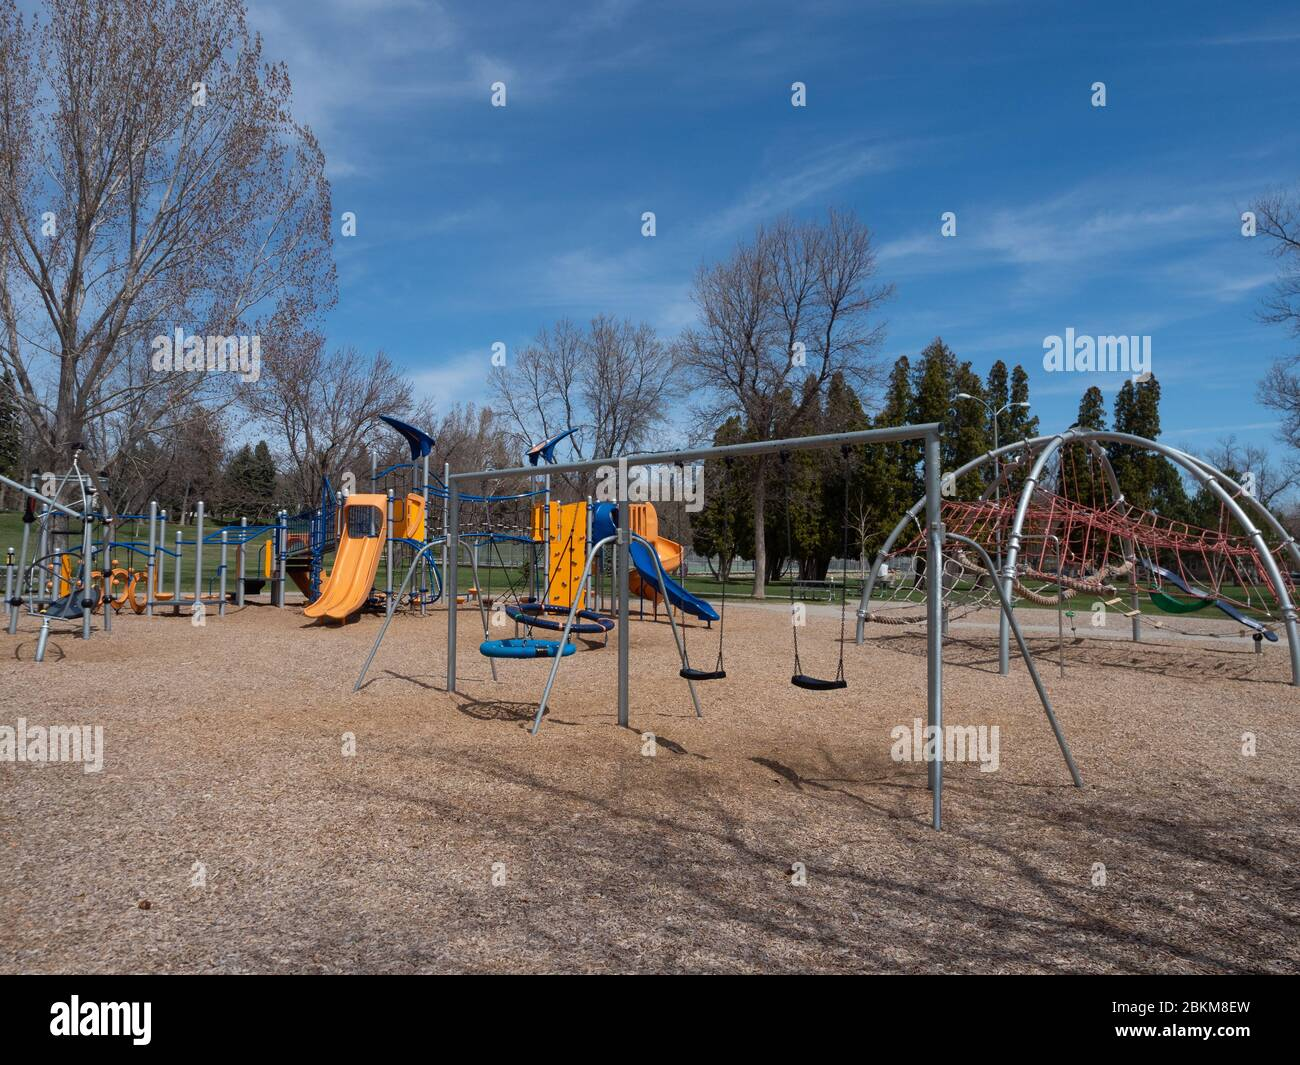 A Large Abandoned Playground With Orange And Blue Slides Swings And Rope Bridges Photographed During The Pandemic Stock Photo Alamy